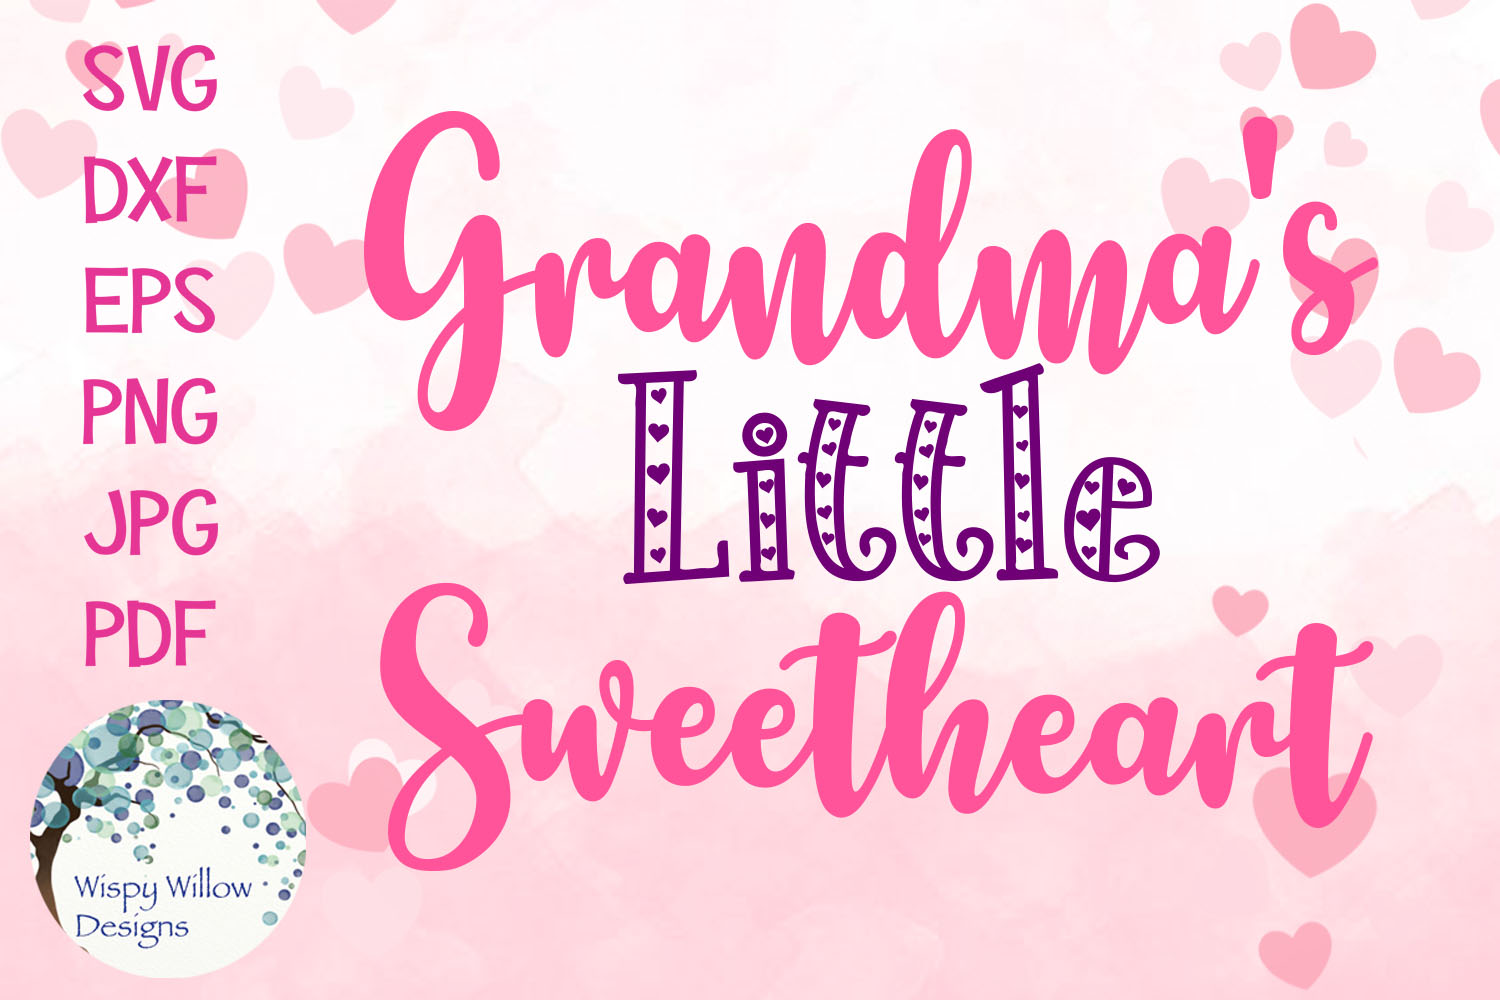 Little Sweetheart SVG Bundle | Valentine's Day SVGs example image 2